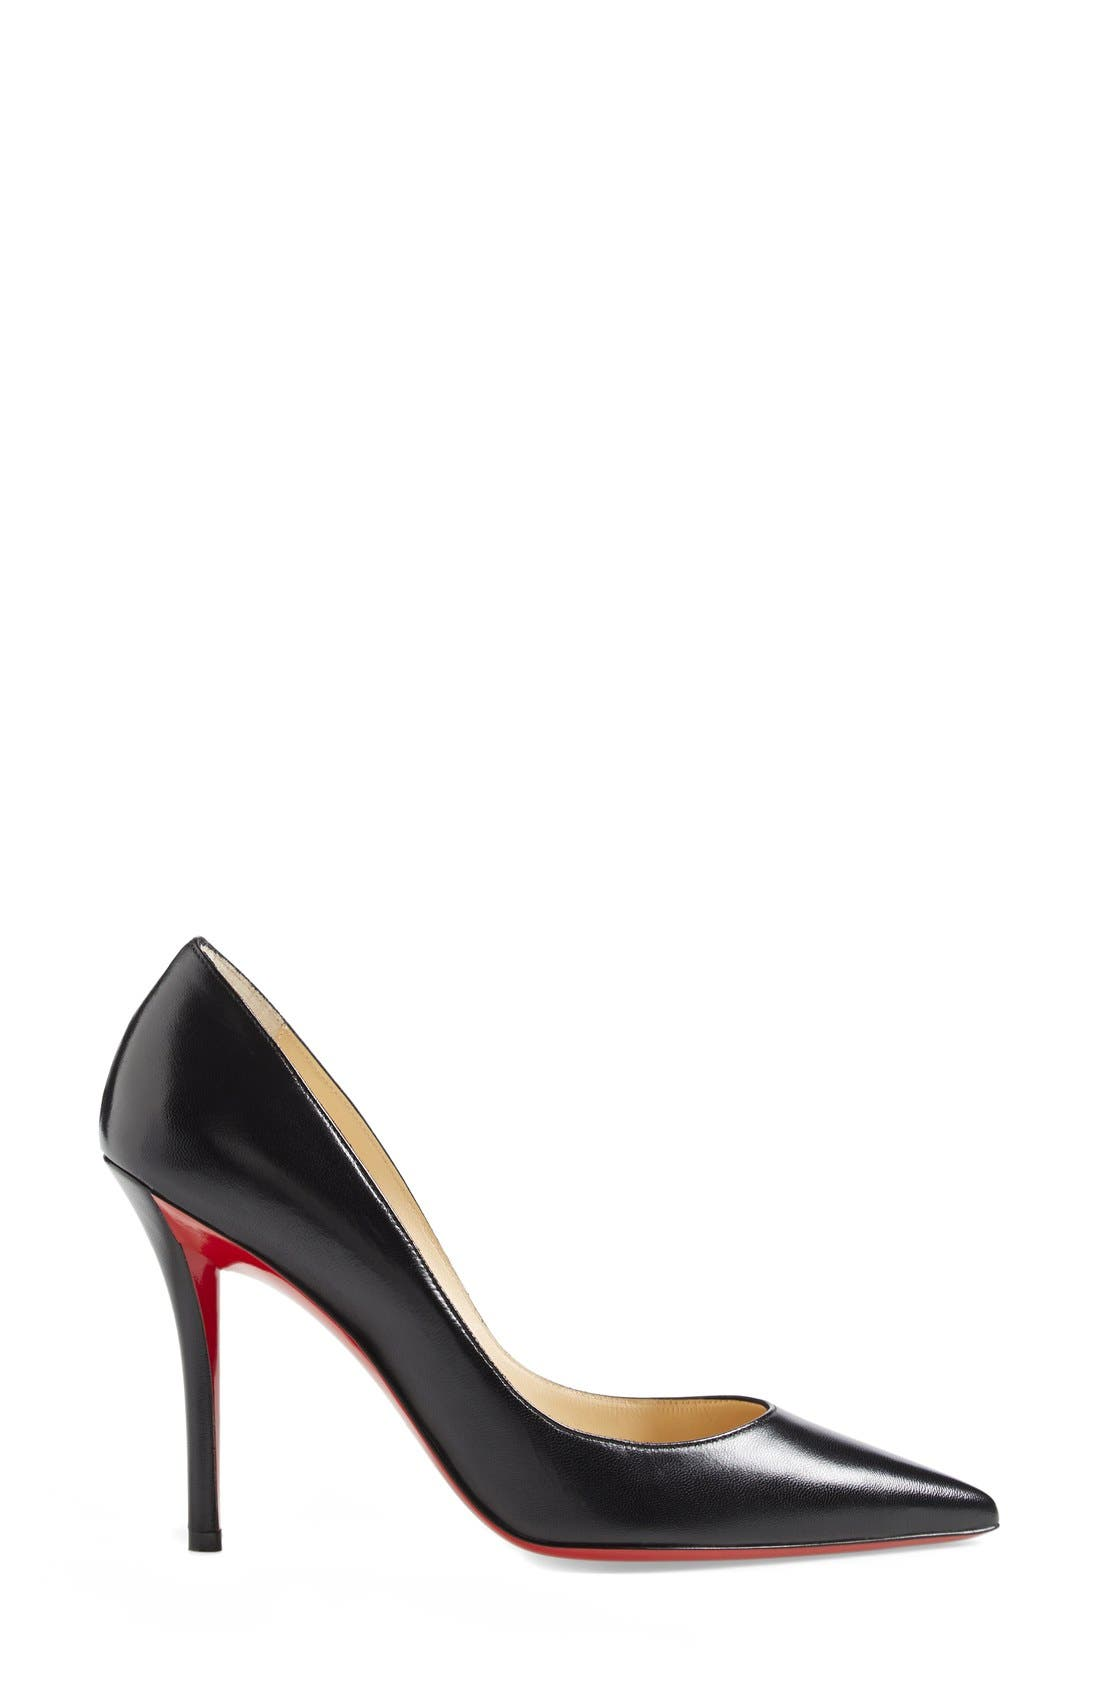 'Apostrophy' Pointy Toe Pump,                             Alternate thumbnail 7, color,